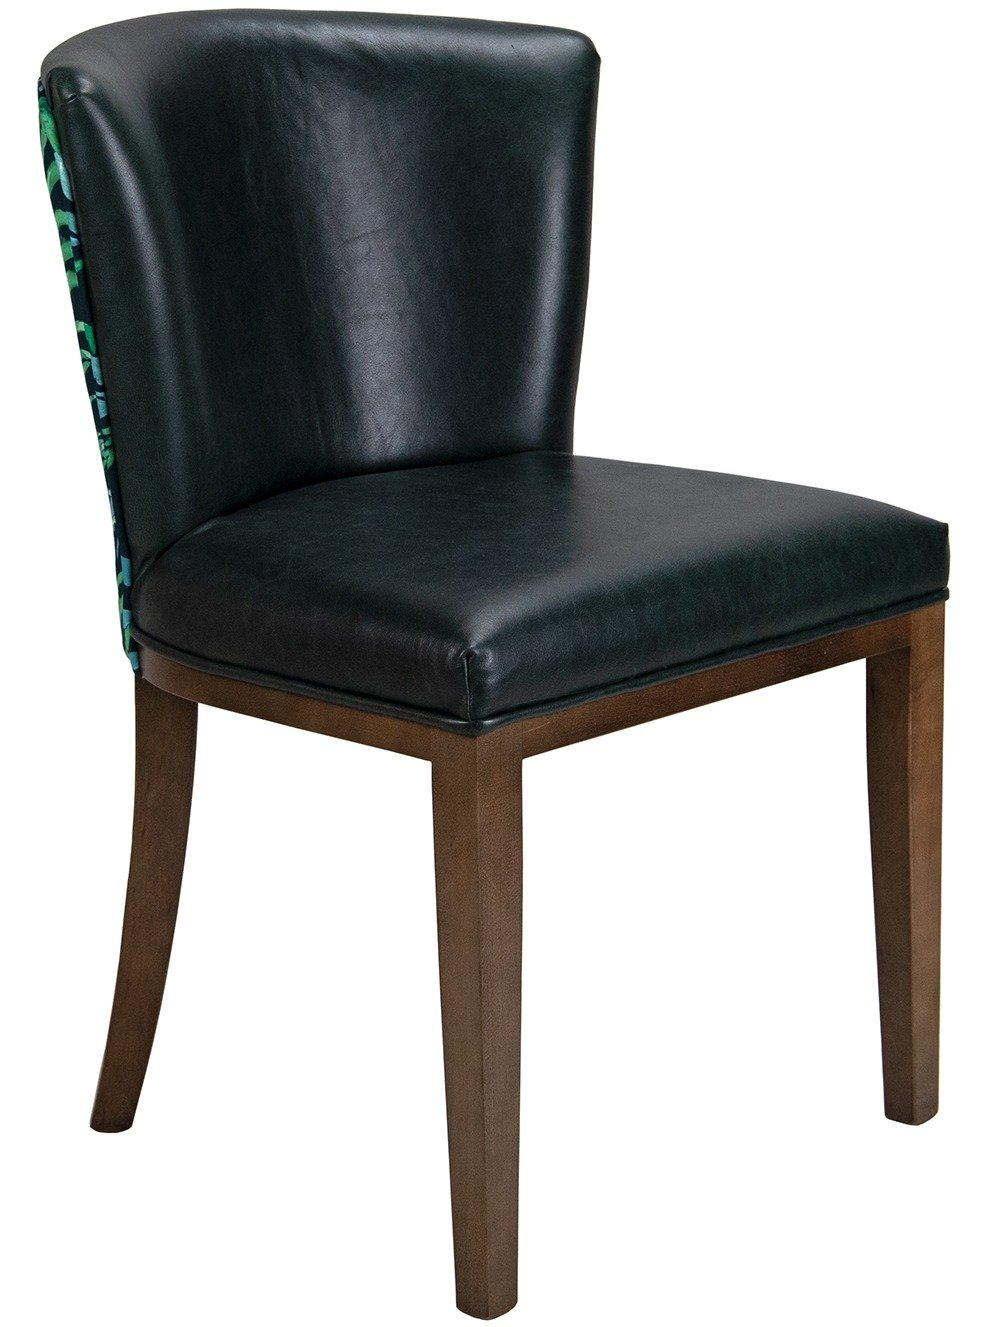 Harper Side Chair from a 45 degree angle